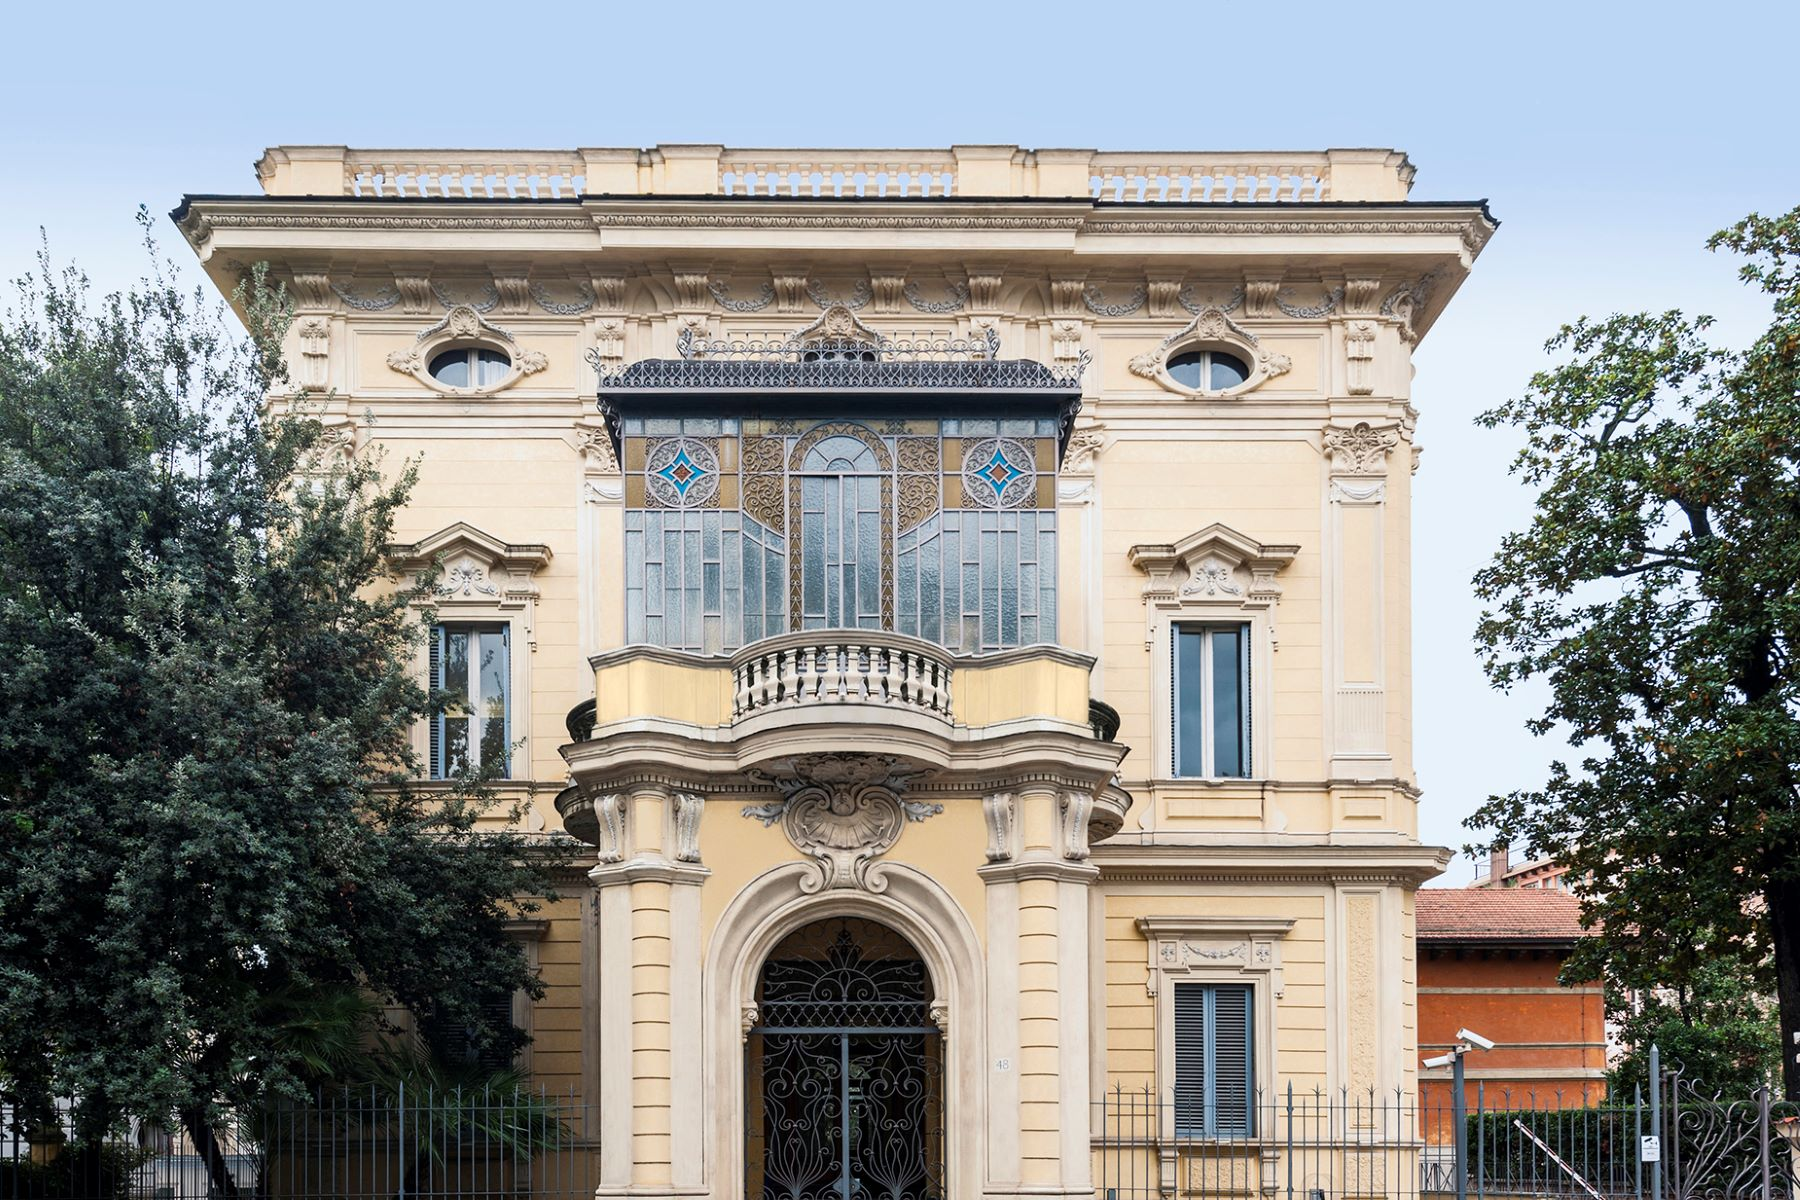 Single Family Home for Sale at Majestic Art Deco Villa in Rome's City Center Via Piemonte Rome, Rome, 00187 Italy